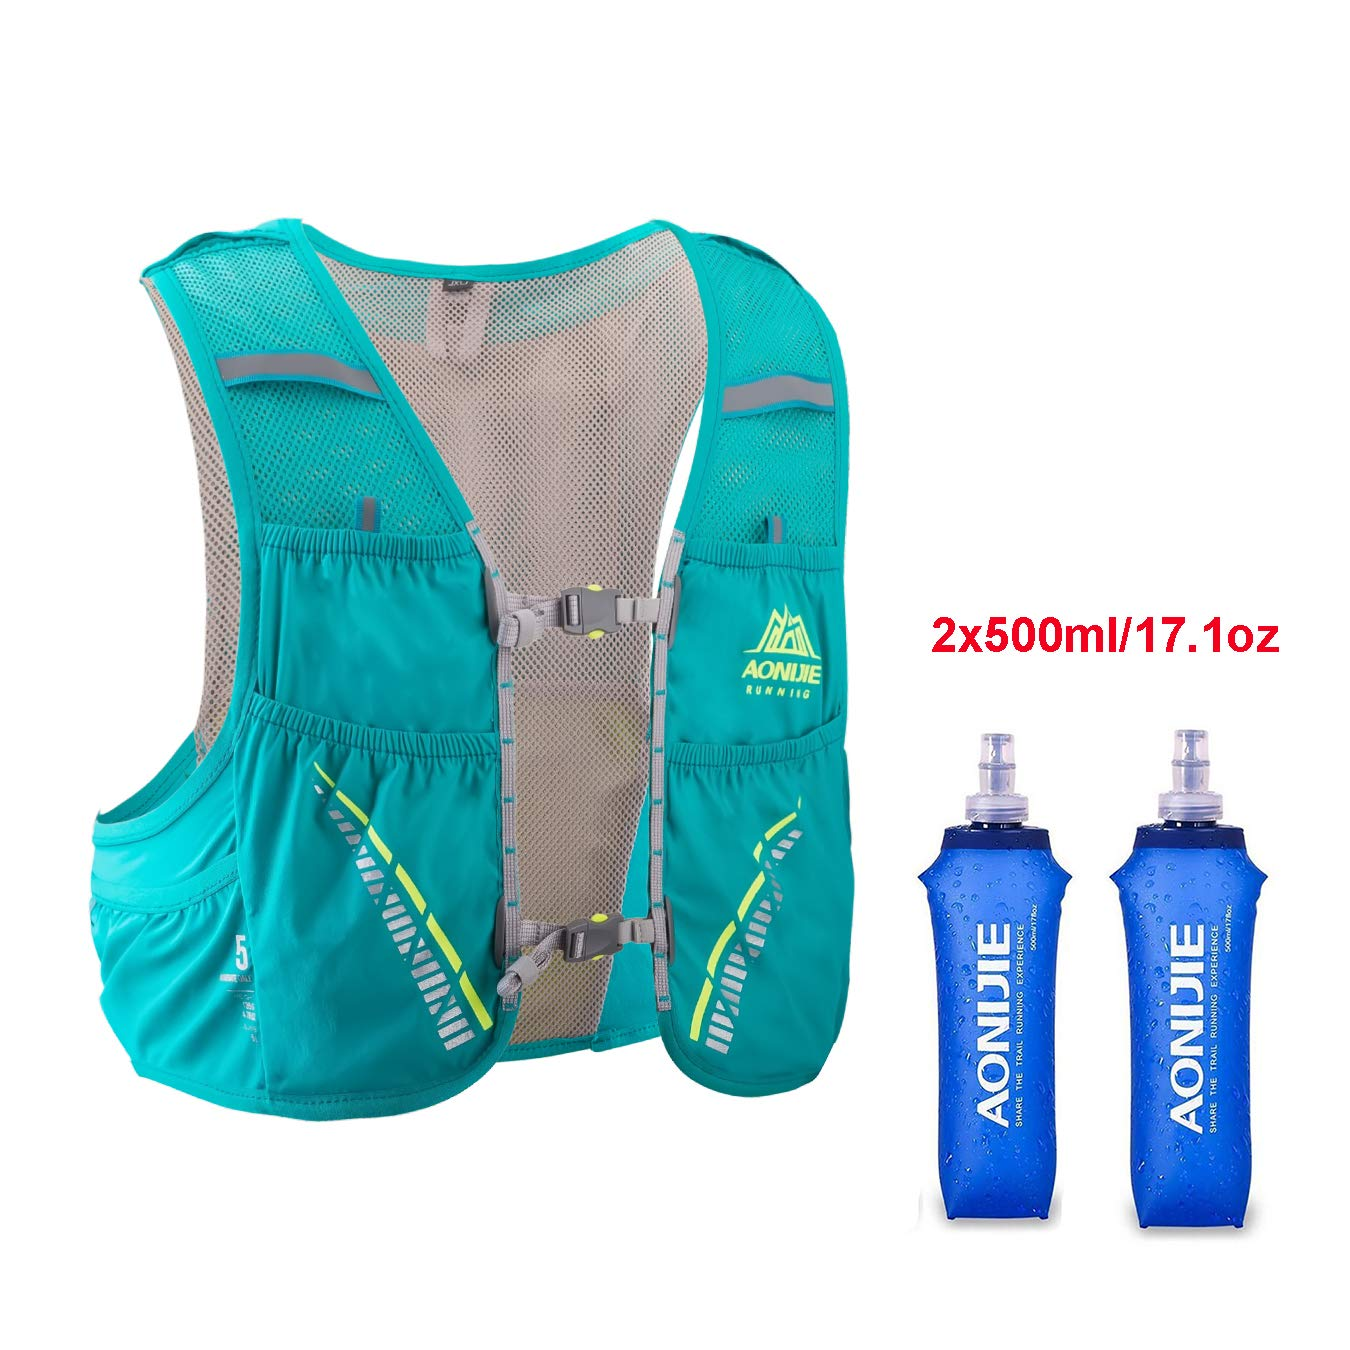 AONIJIE Hydration Pack Backpack with 2x500ml Water Bottles,Lightweight 5L Outdoor Marathoner Running Race Hydration Vest for Cycling Hiking (Green, S/M(29.5-33in))